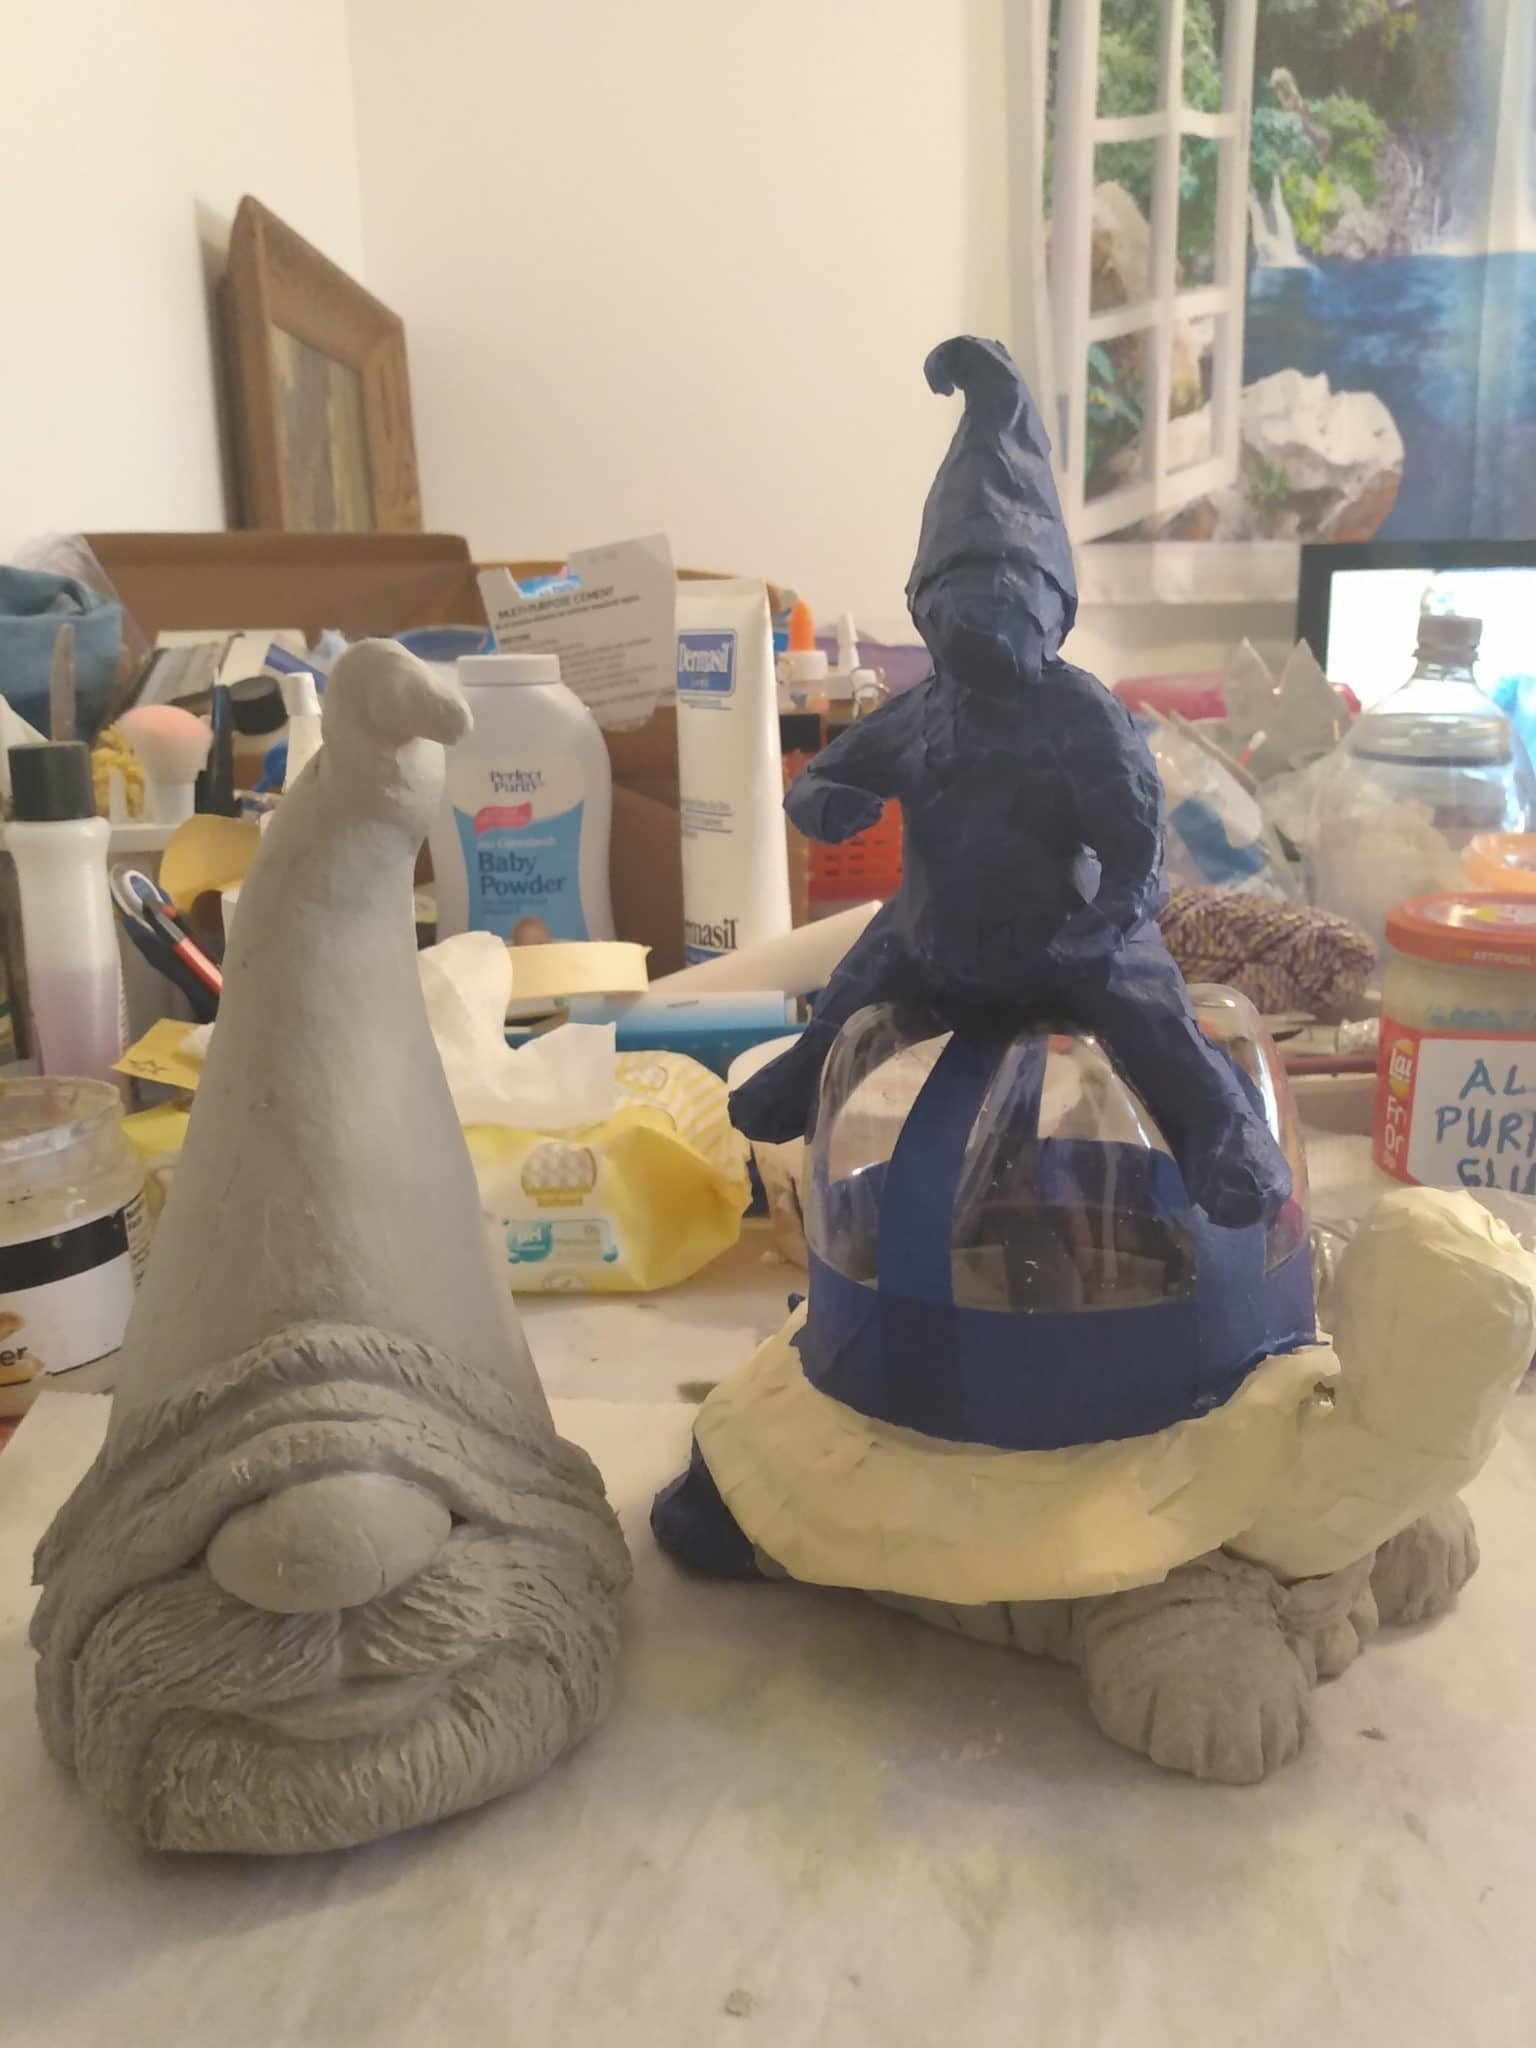 More gnomes from Angela Crowley